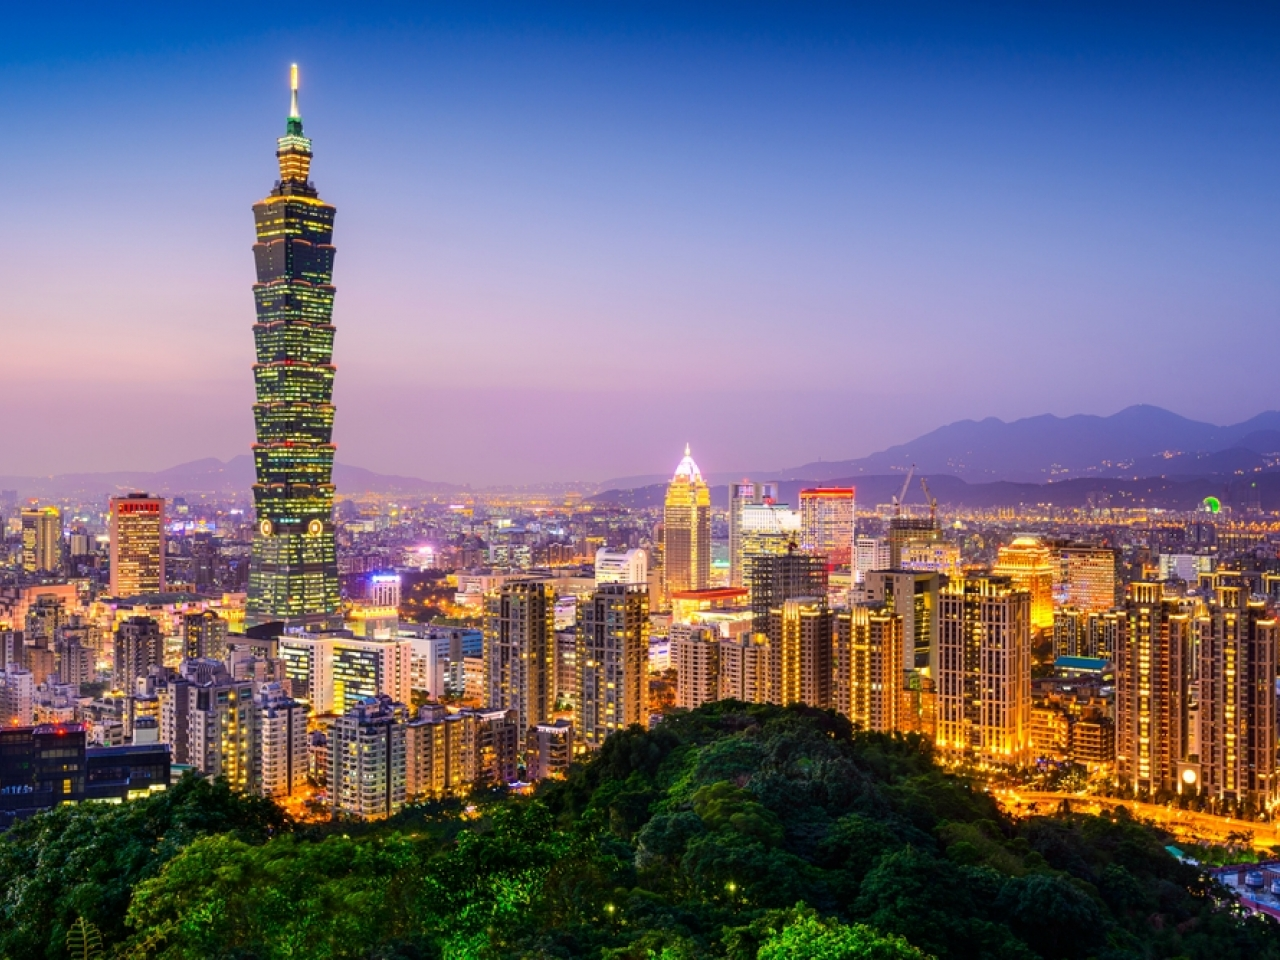 Macau says its Economic and Cultural Delegation in Taiwan will temporarily suspend operations from June 19. File image: Shutterstock